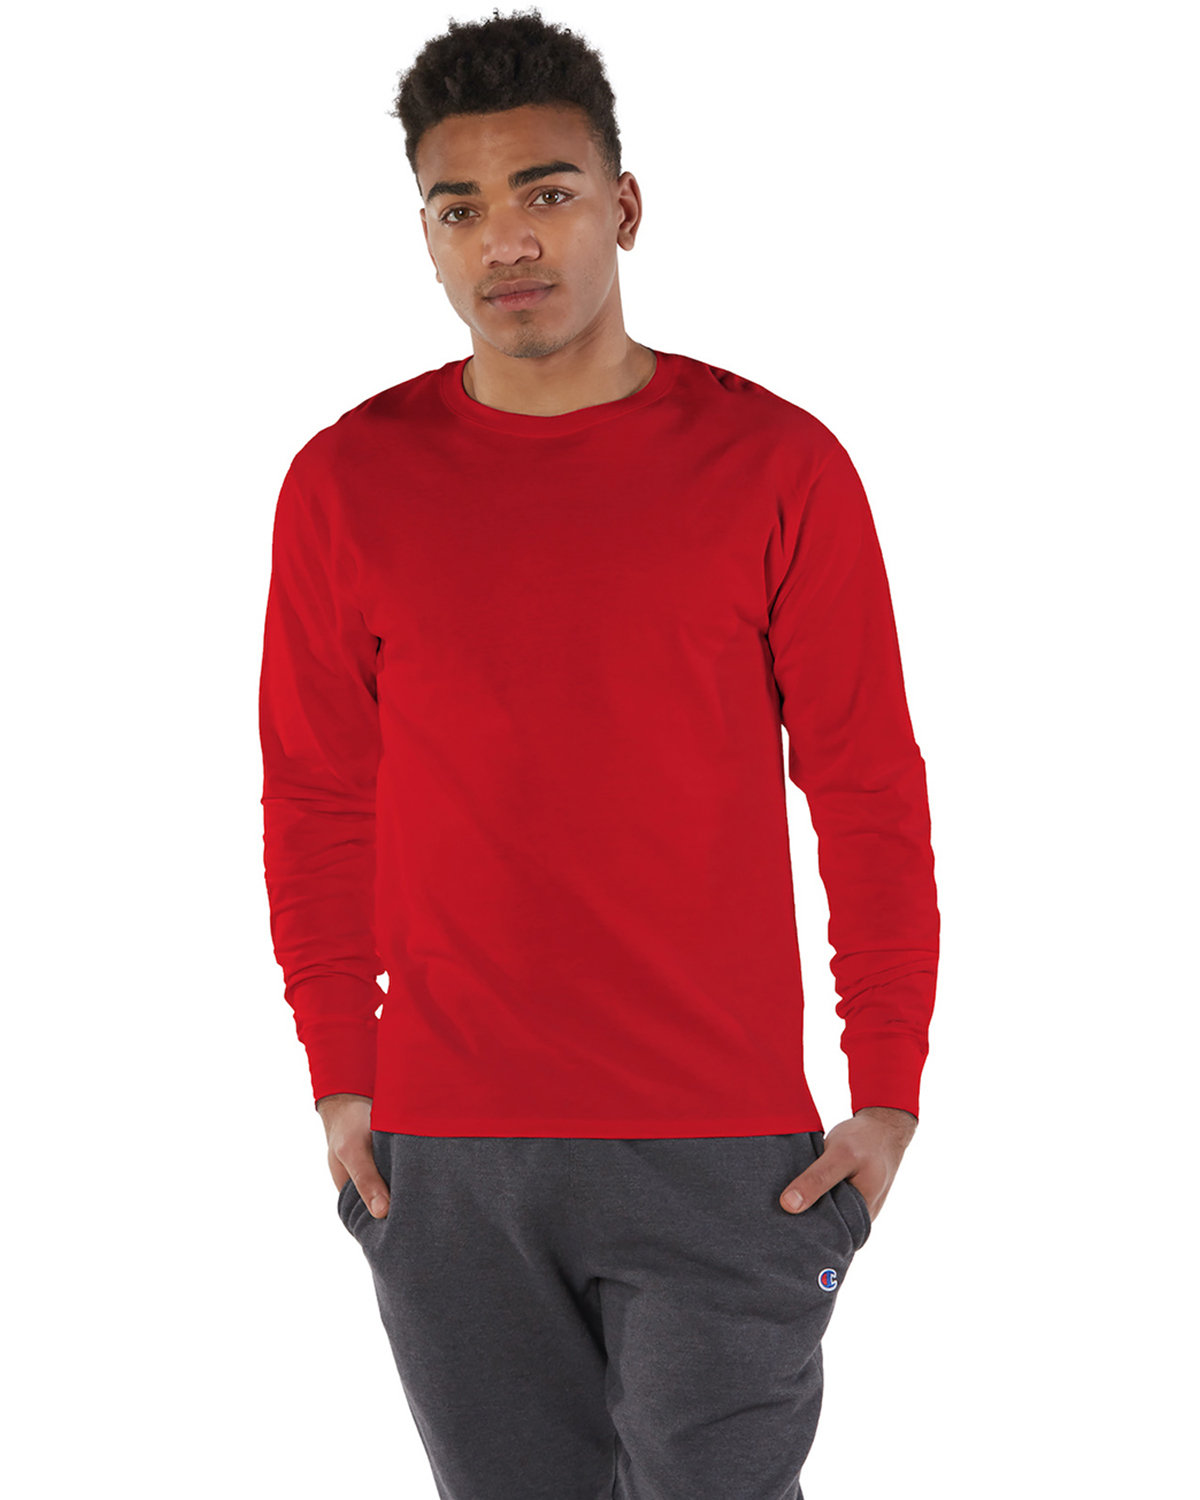 Champion Adult Long-Sleeve Ringspun T-Shirt ATHLETIC RED